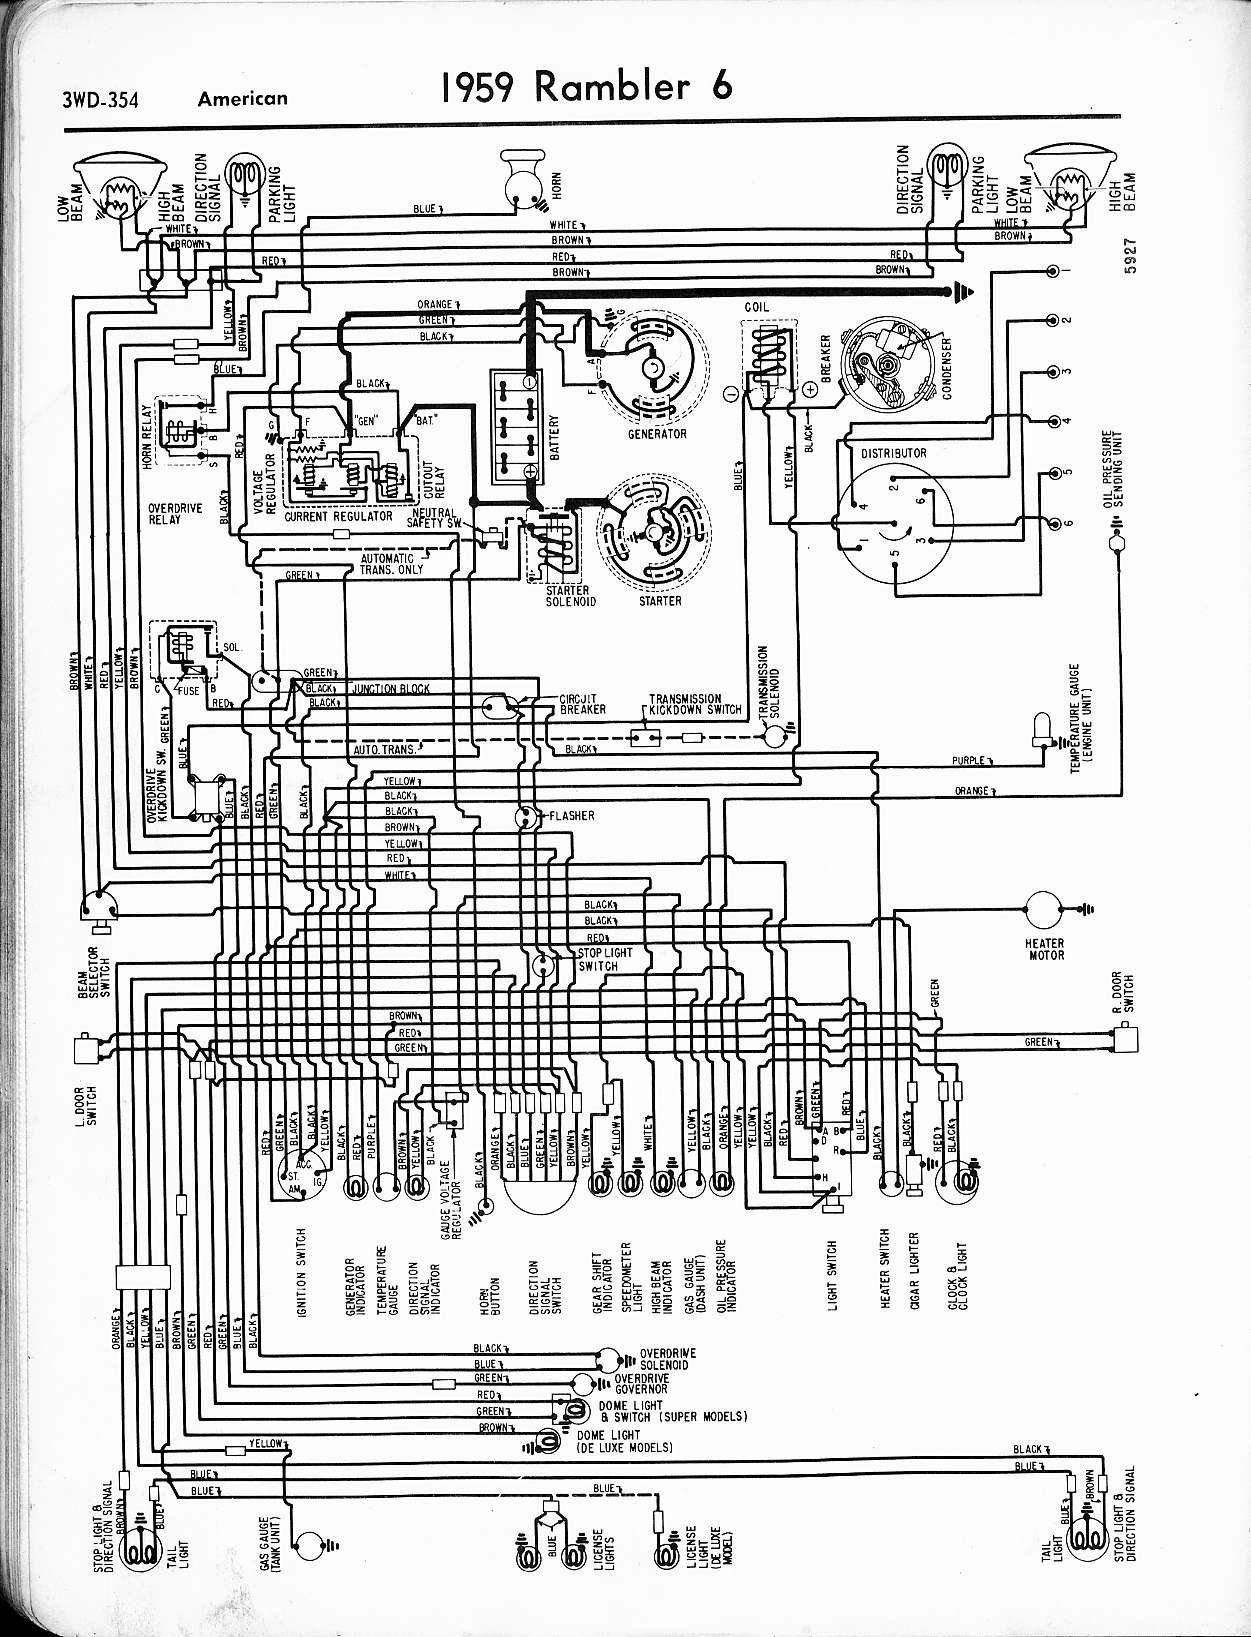 1967 rambler rebel wiring diagram